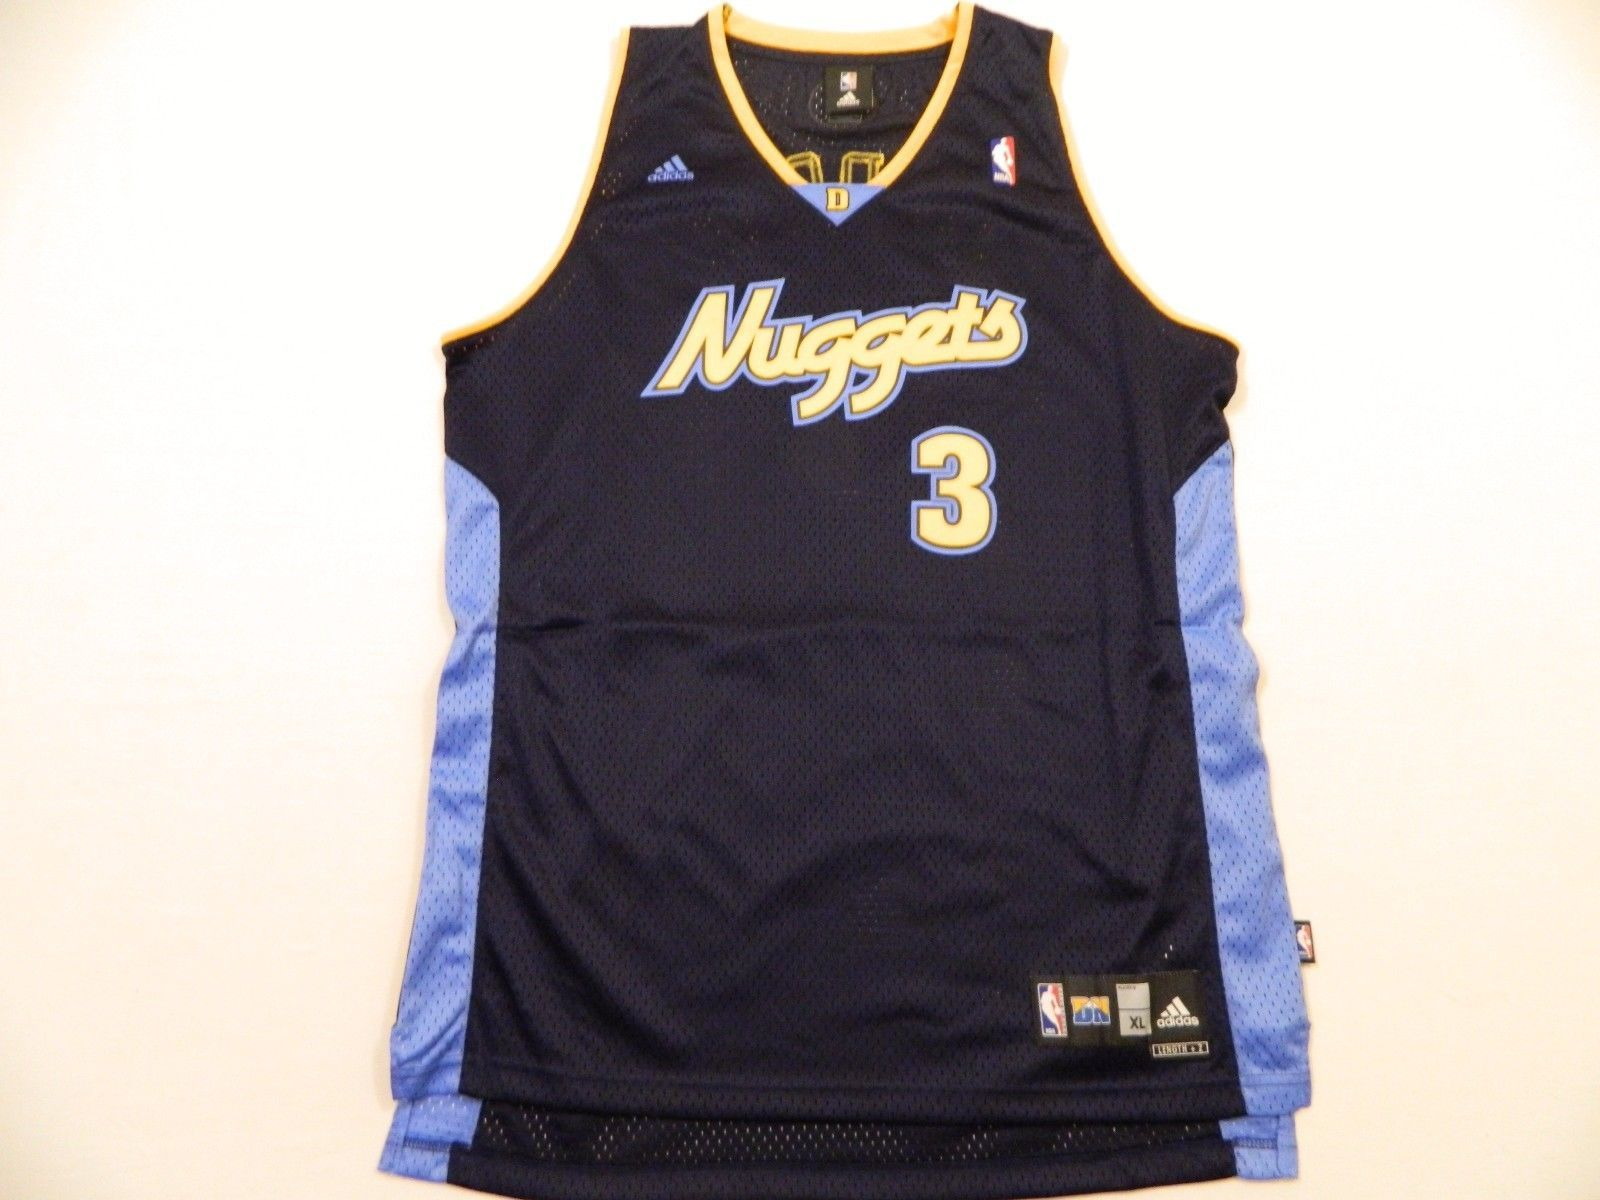 72e0fbf4dd9 M16 New Adidas Denver Nuggets Allen Iverson and 50 similar items